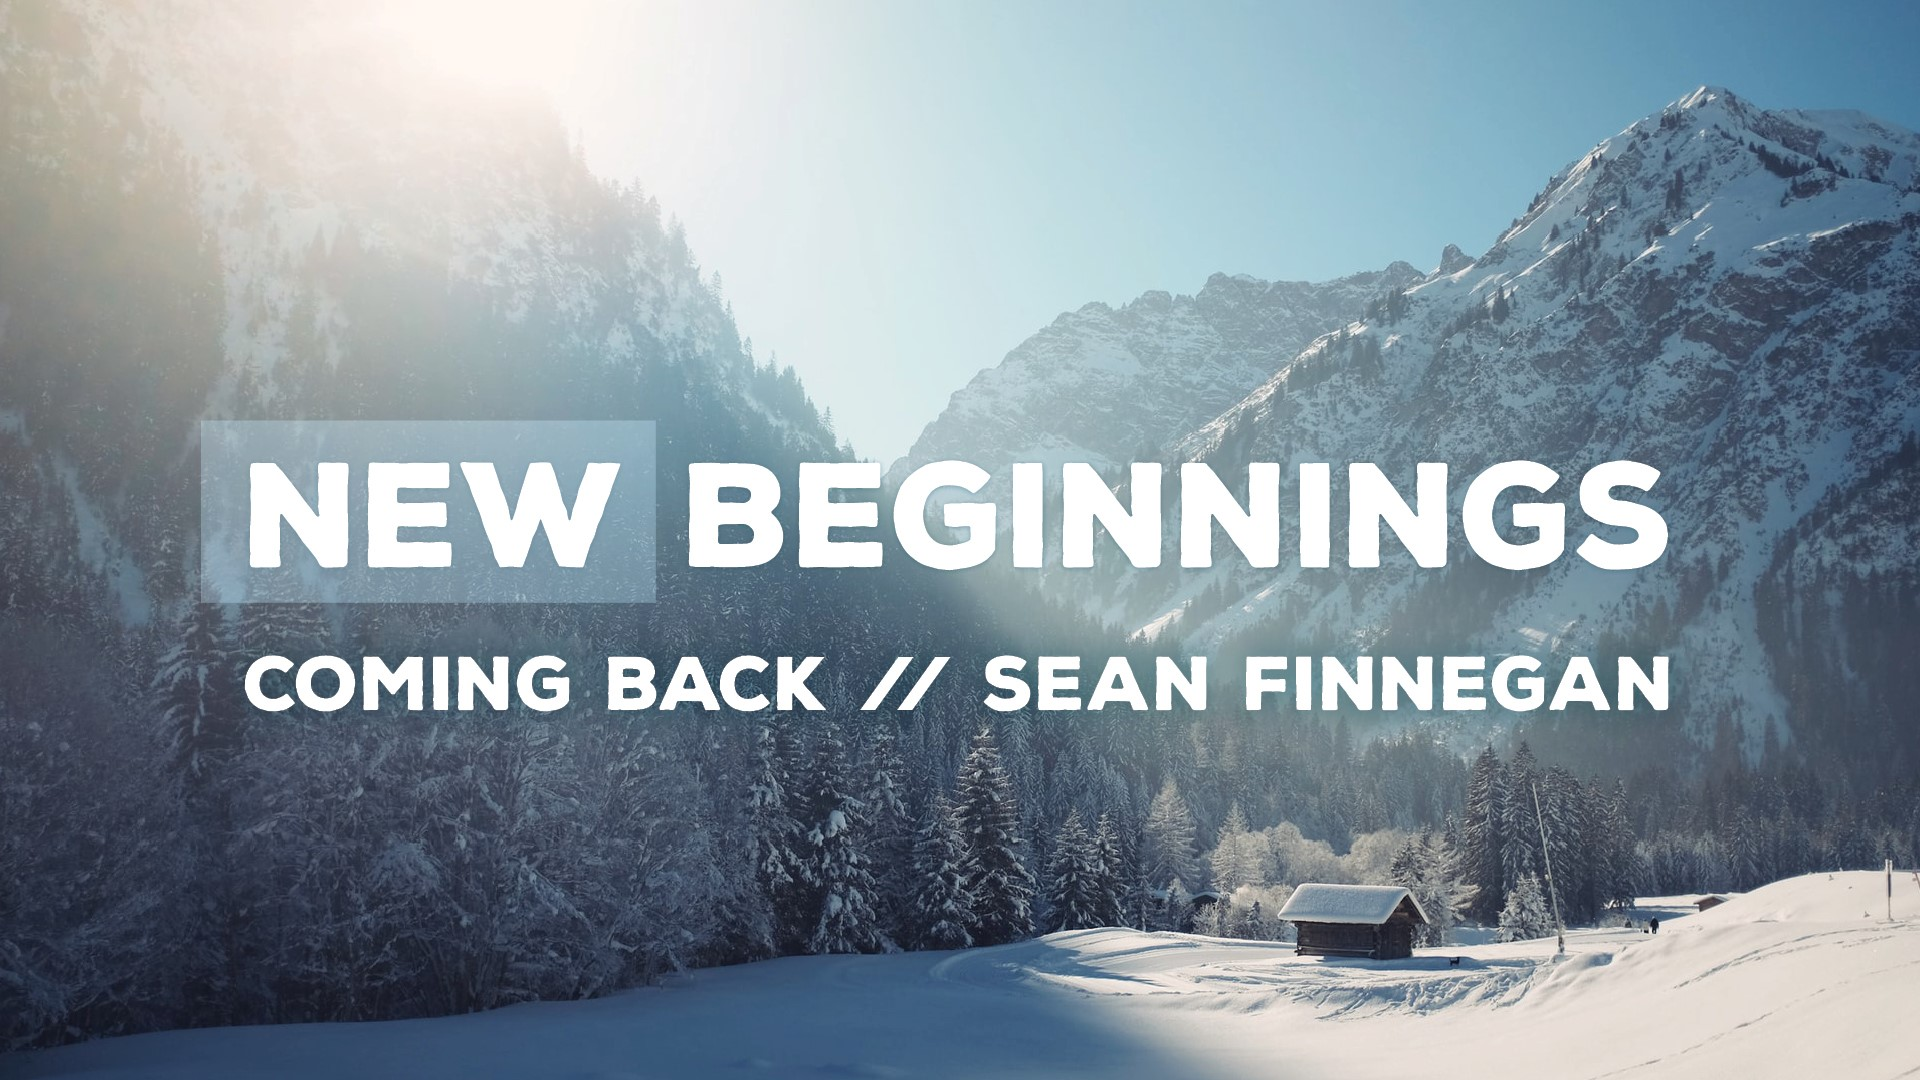 New Beginnings: Coming Back